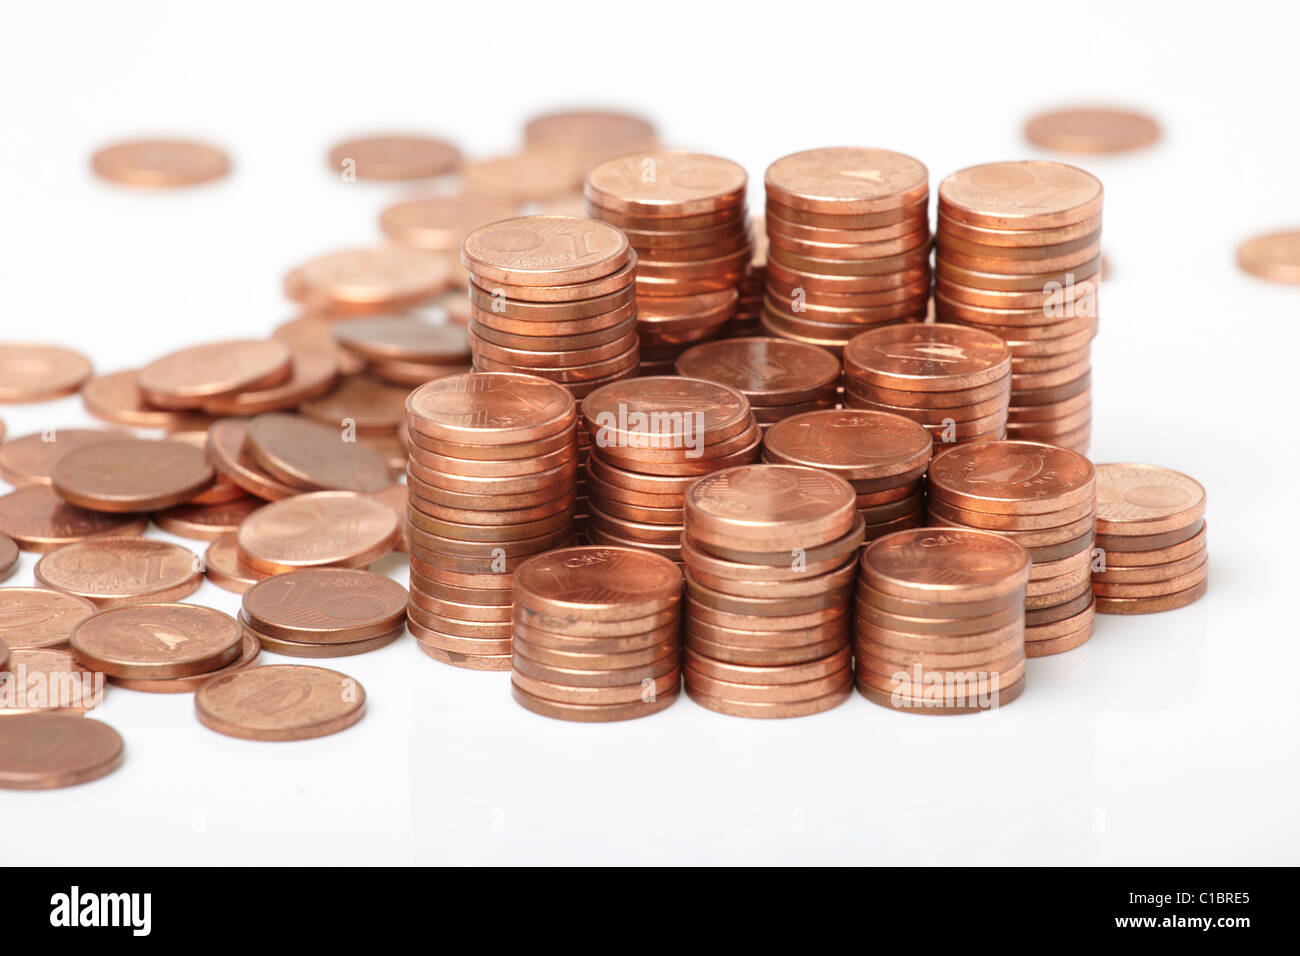 coins on white background - Stock Image